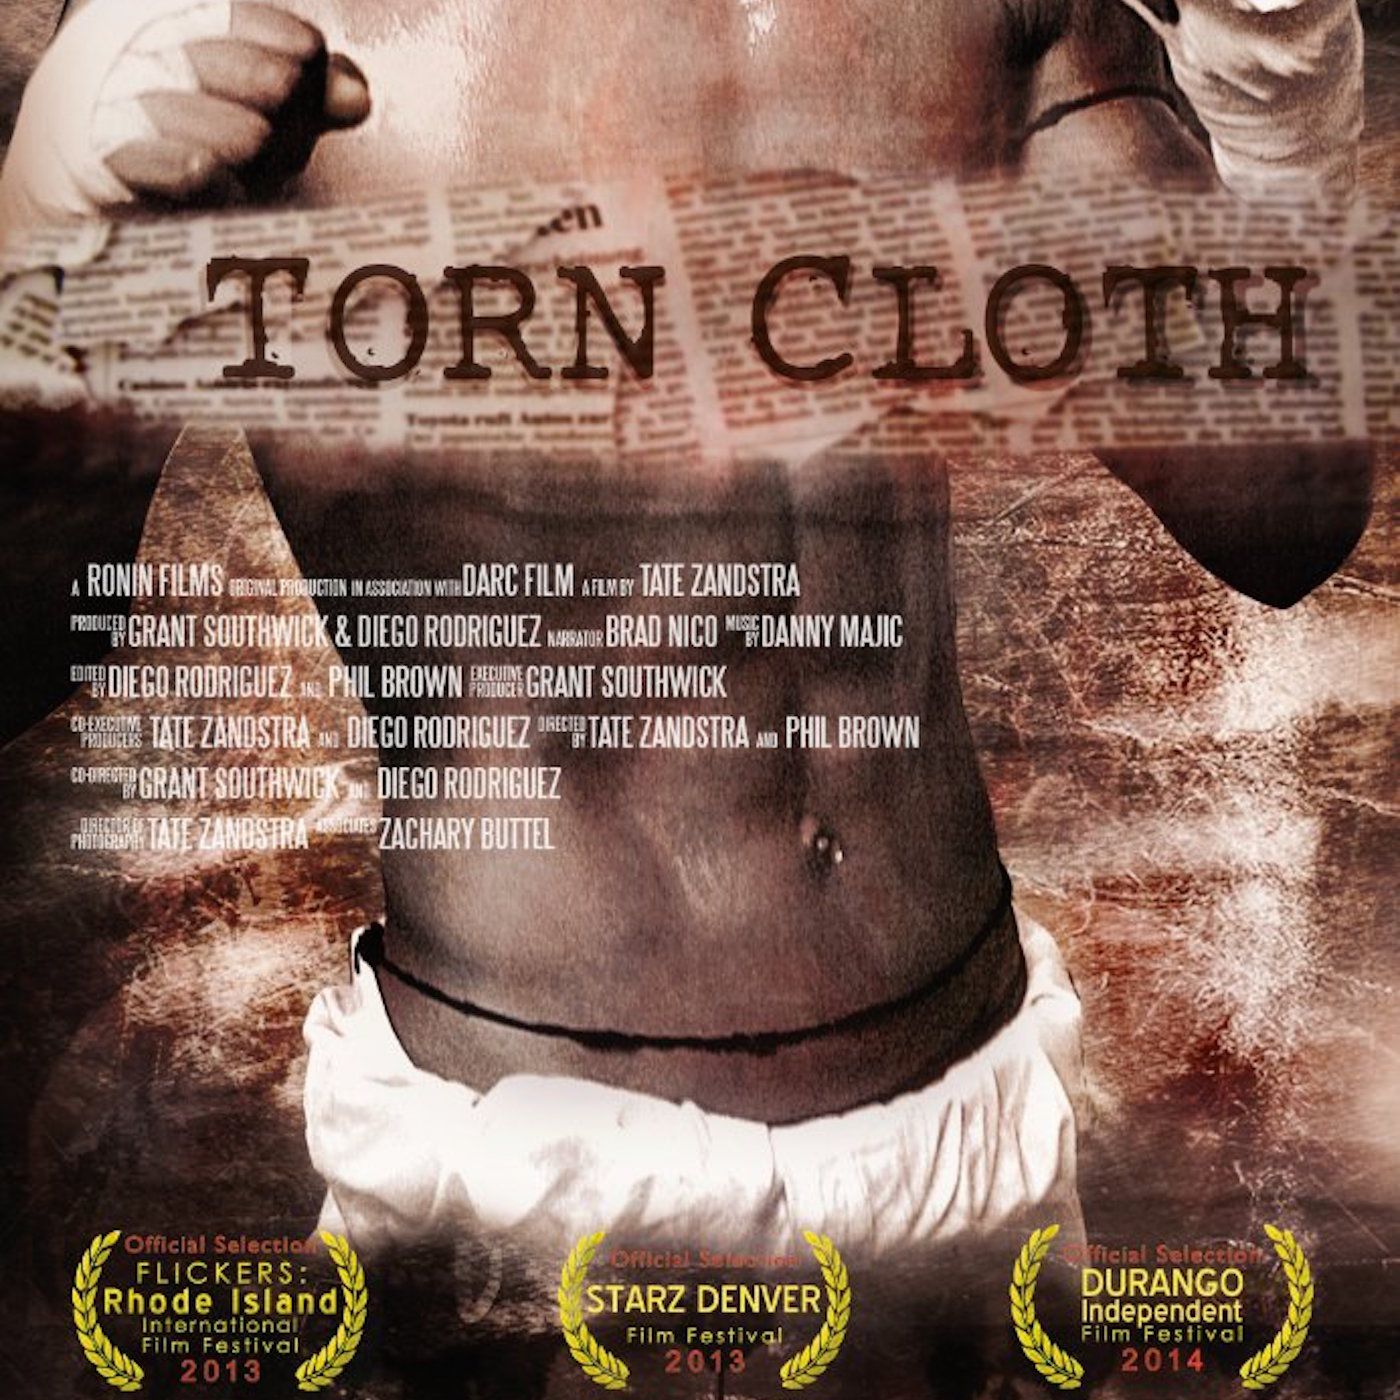 torn-cloth-cover